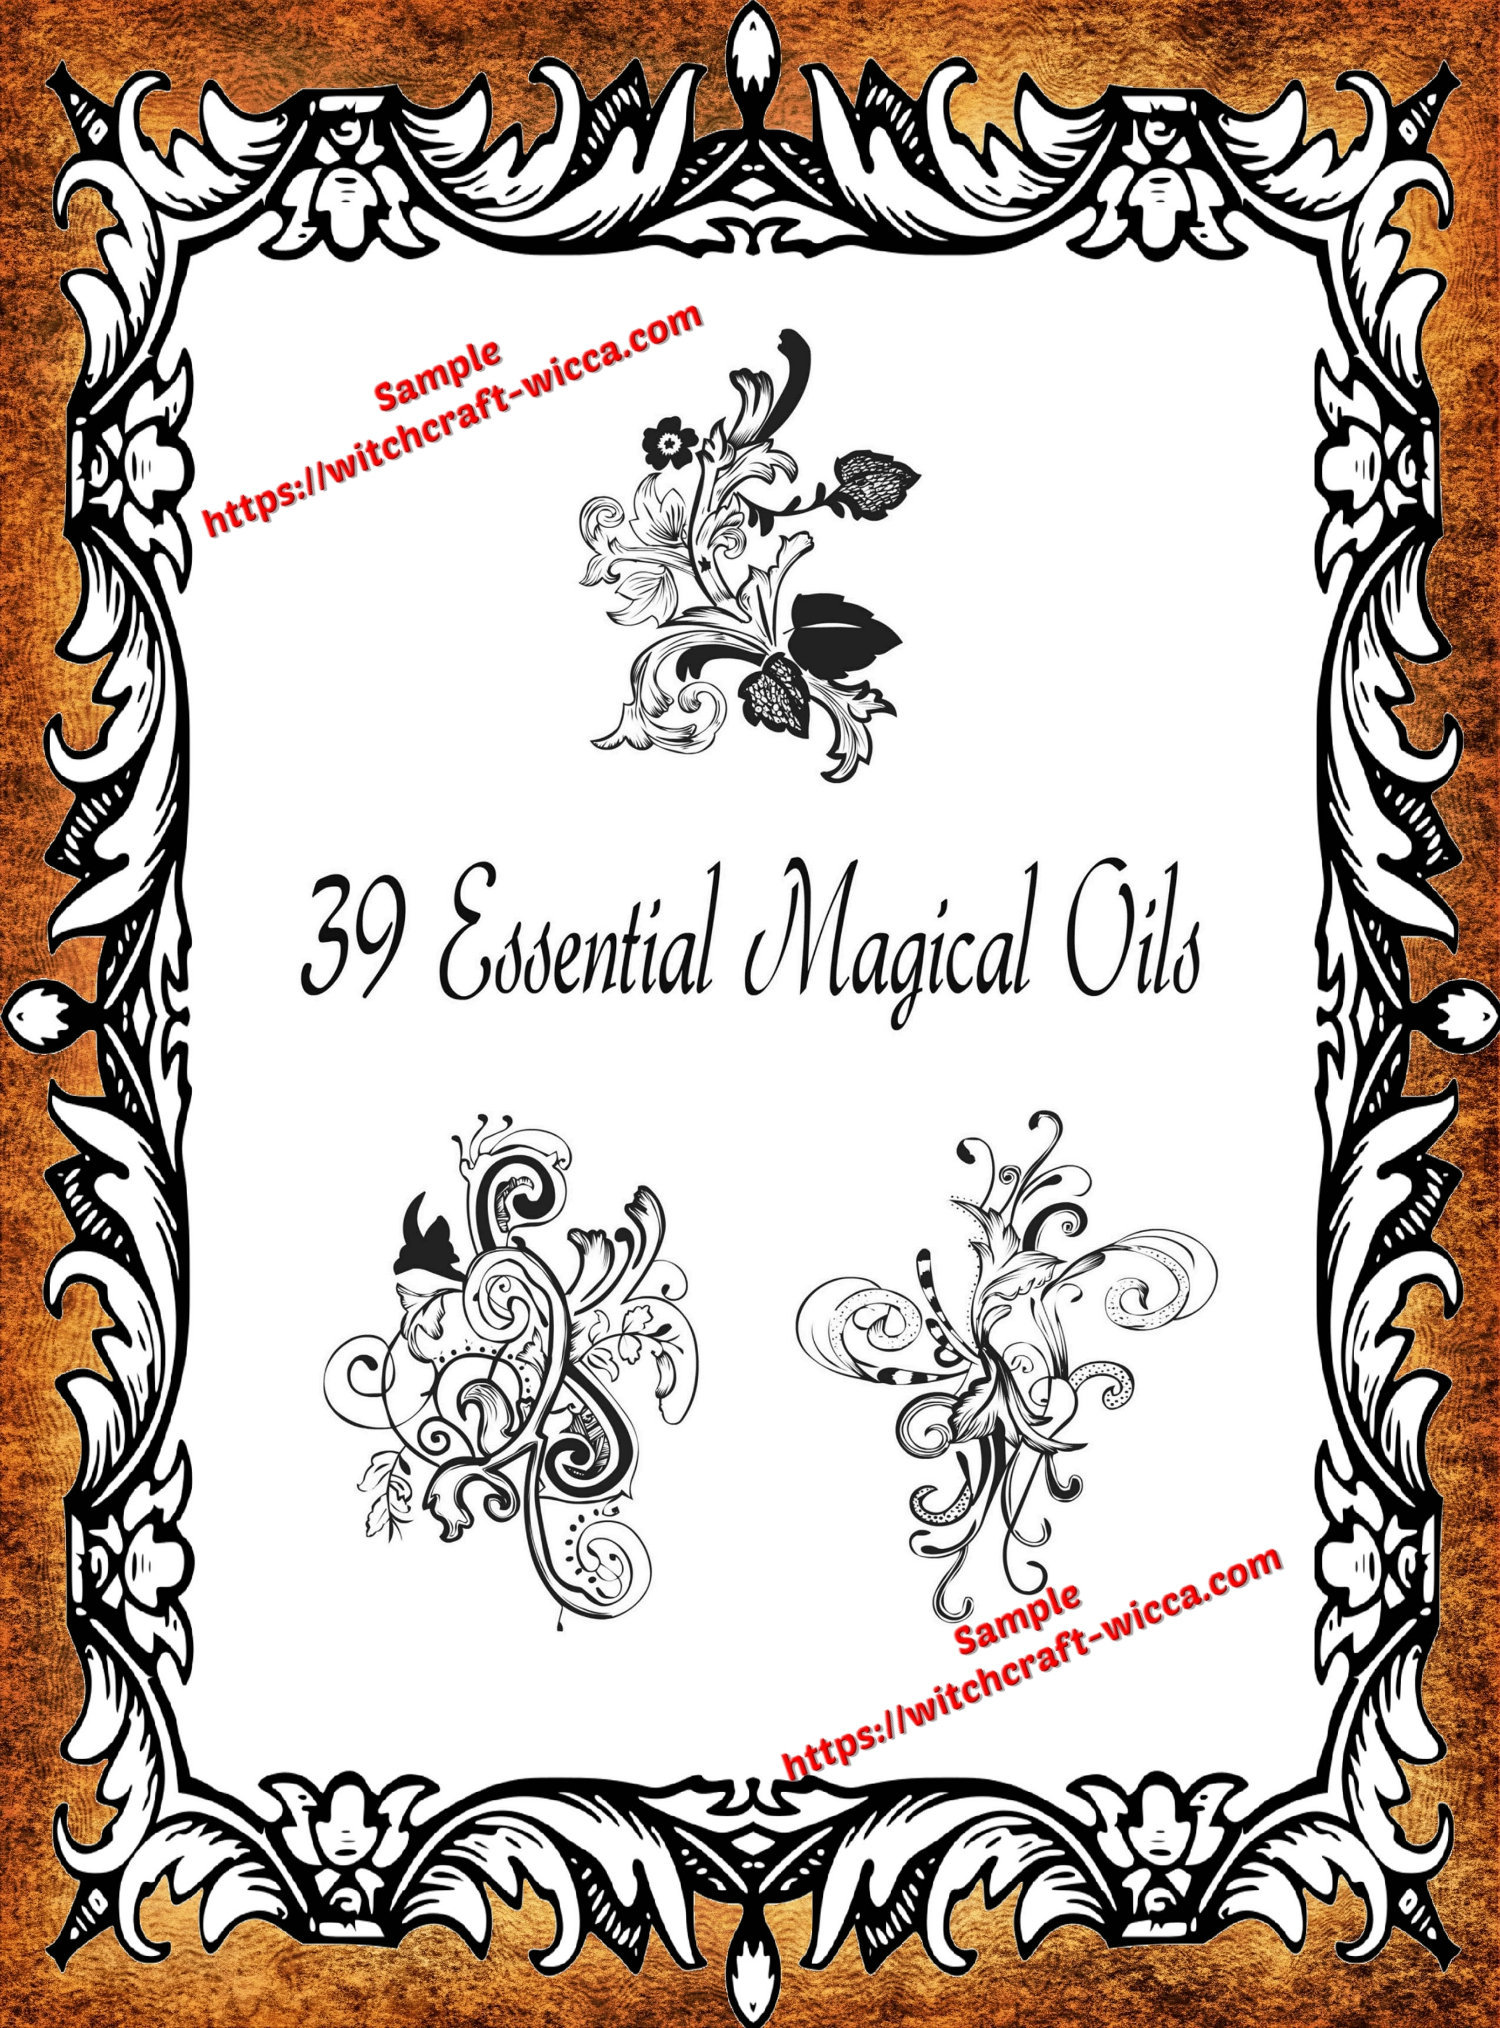 photograph relating to Printable Book of Shadows referred to as 39 Imperative Magical Oils - PDF Printable Reserve of Shadows Webpages, Ebook of Shadows prompt obtain